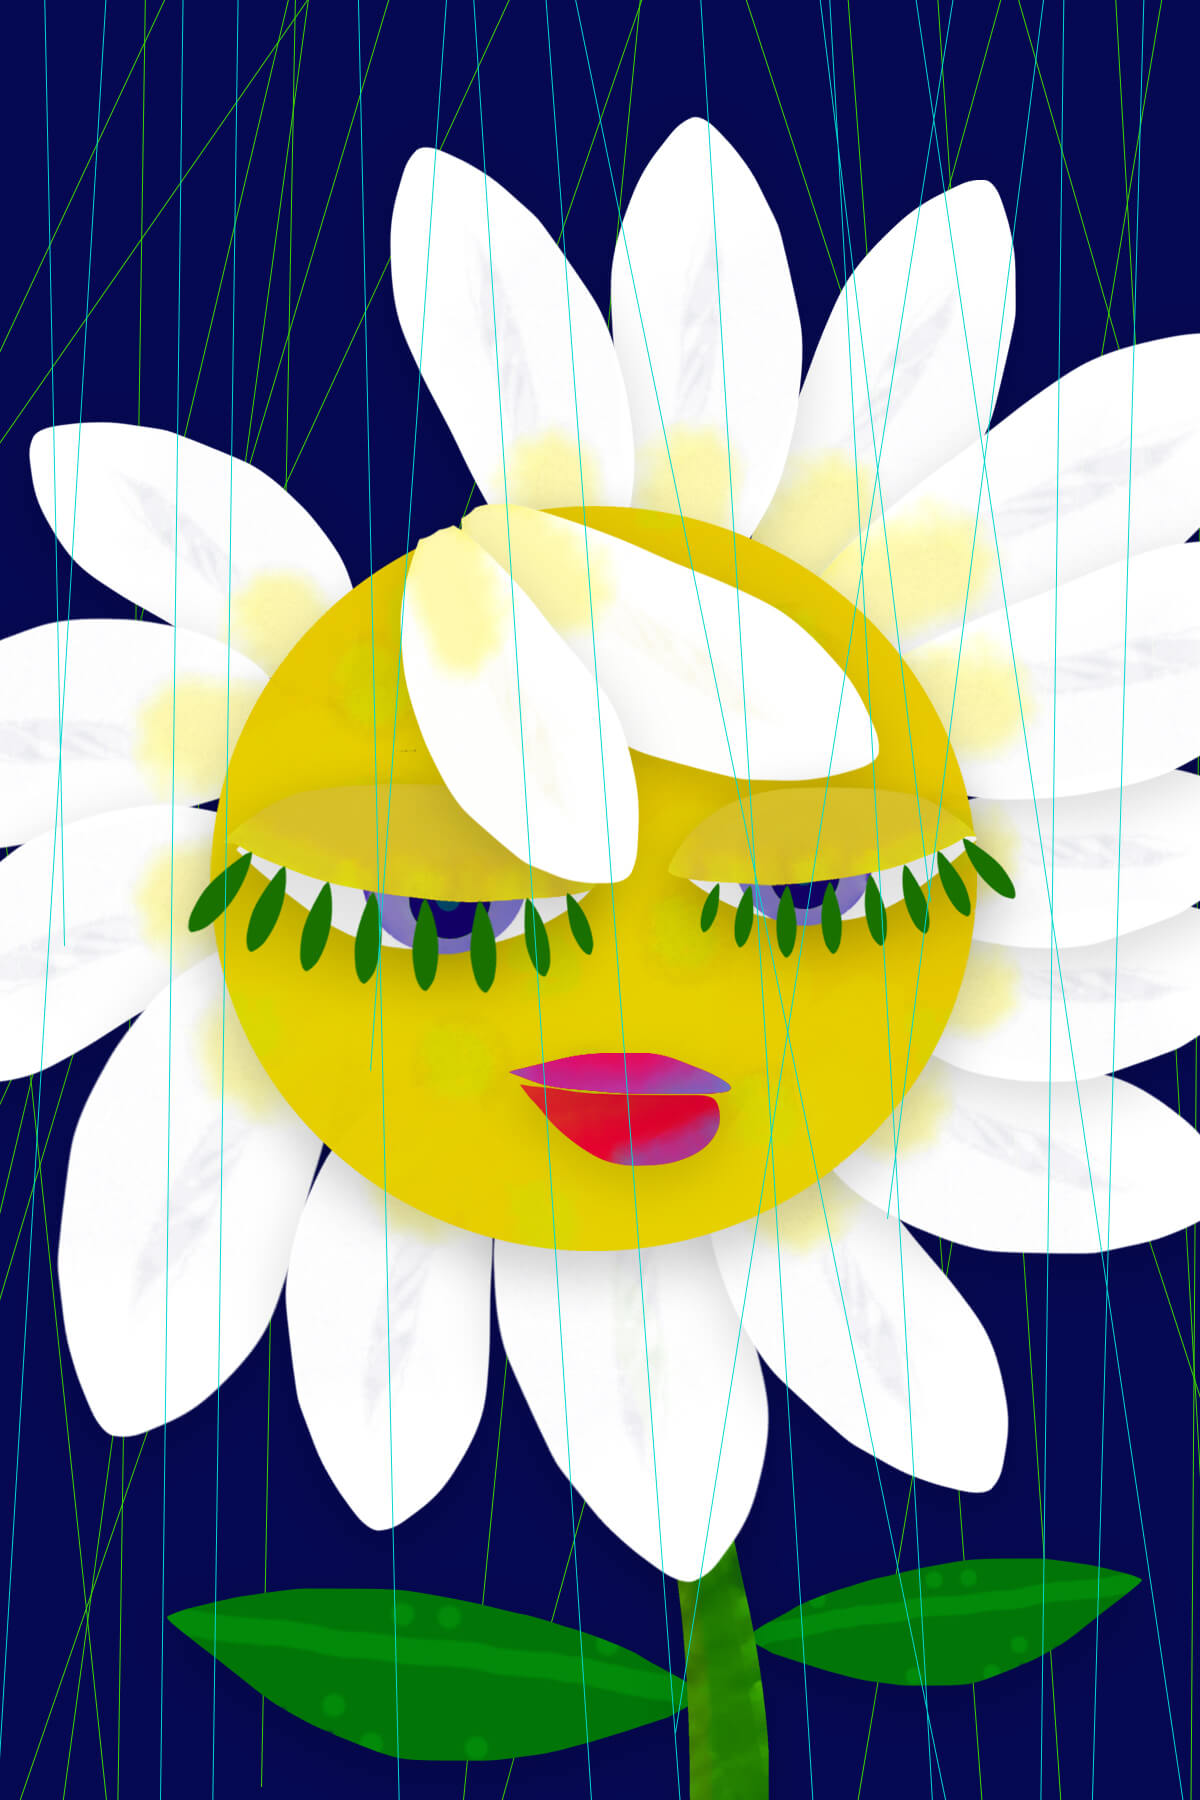 A colorful cartoon painting of a daisy with a face on it. Her eyes are closed and blue lines that appear to be rain cross over the image vertically.